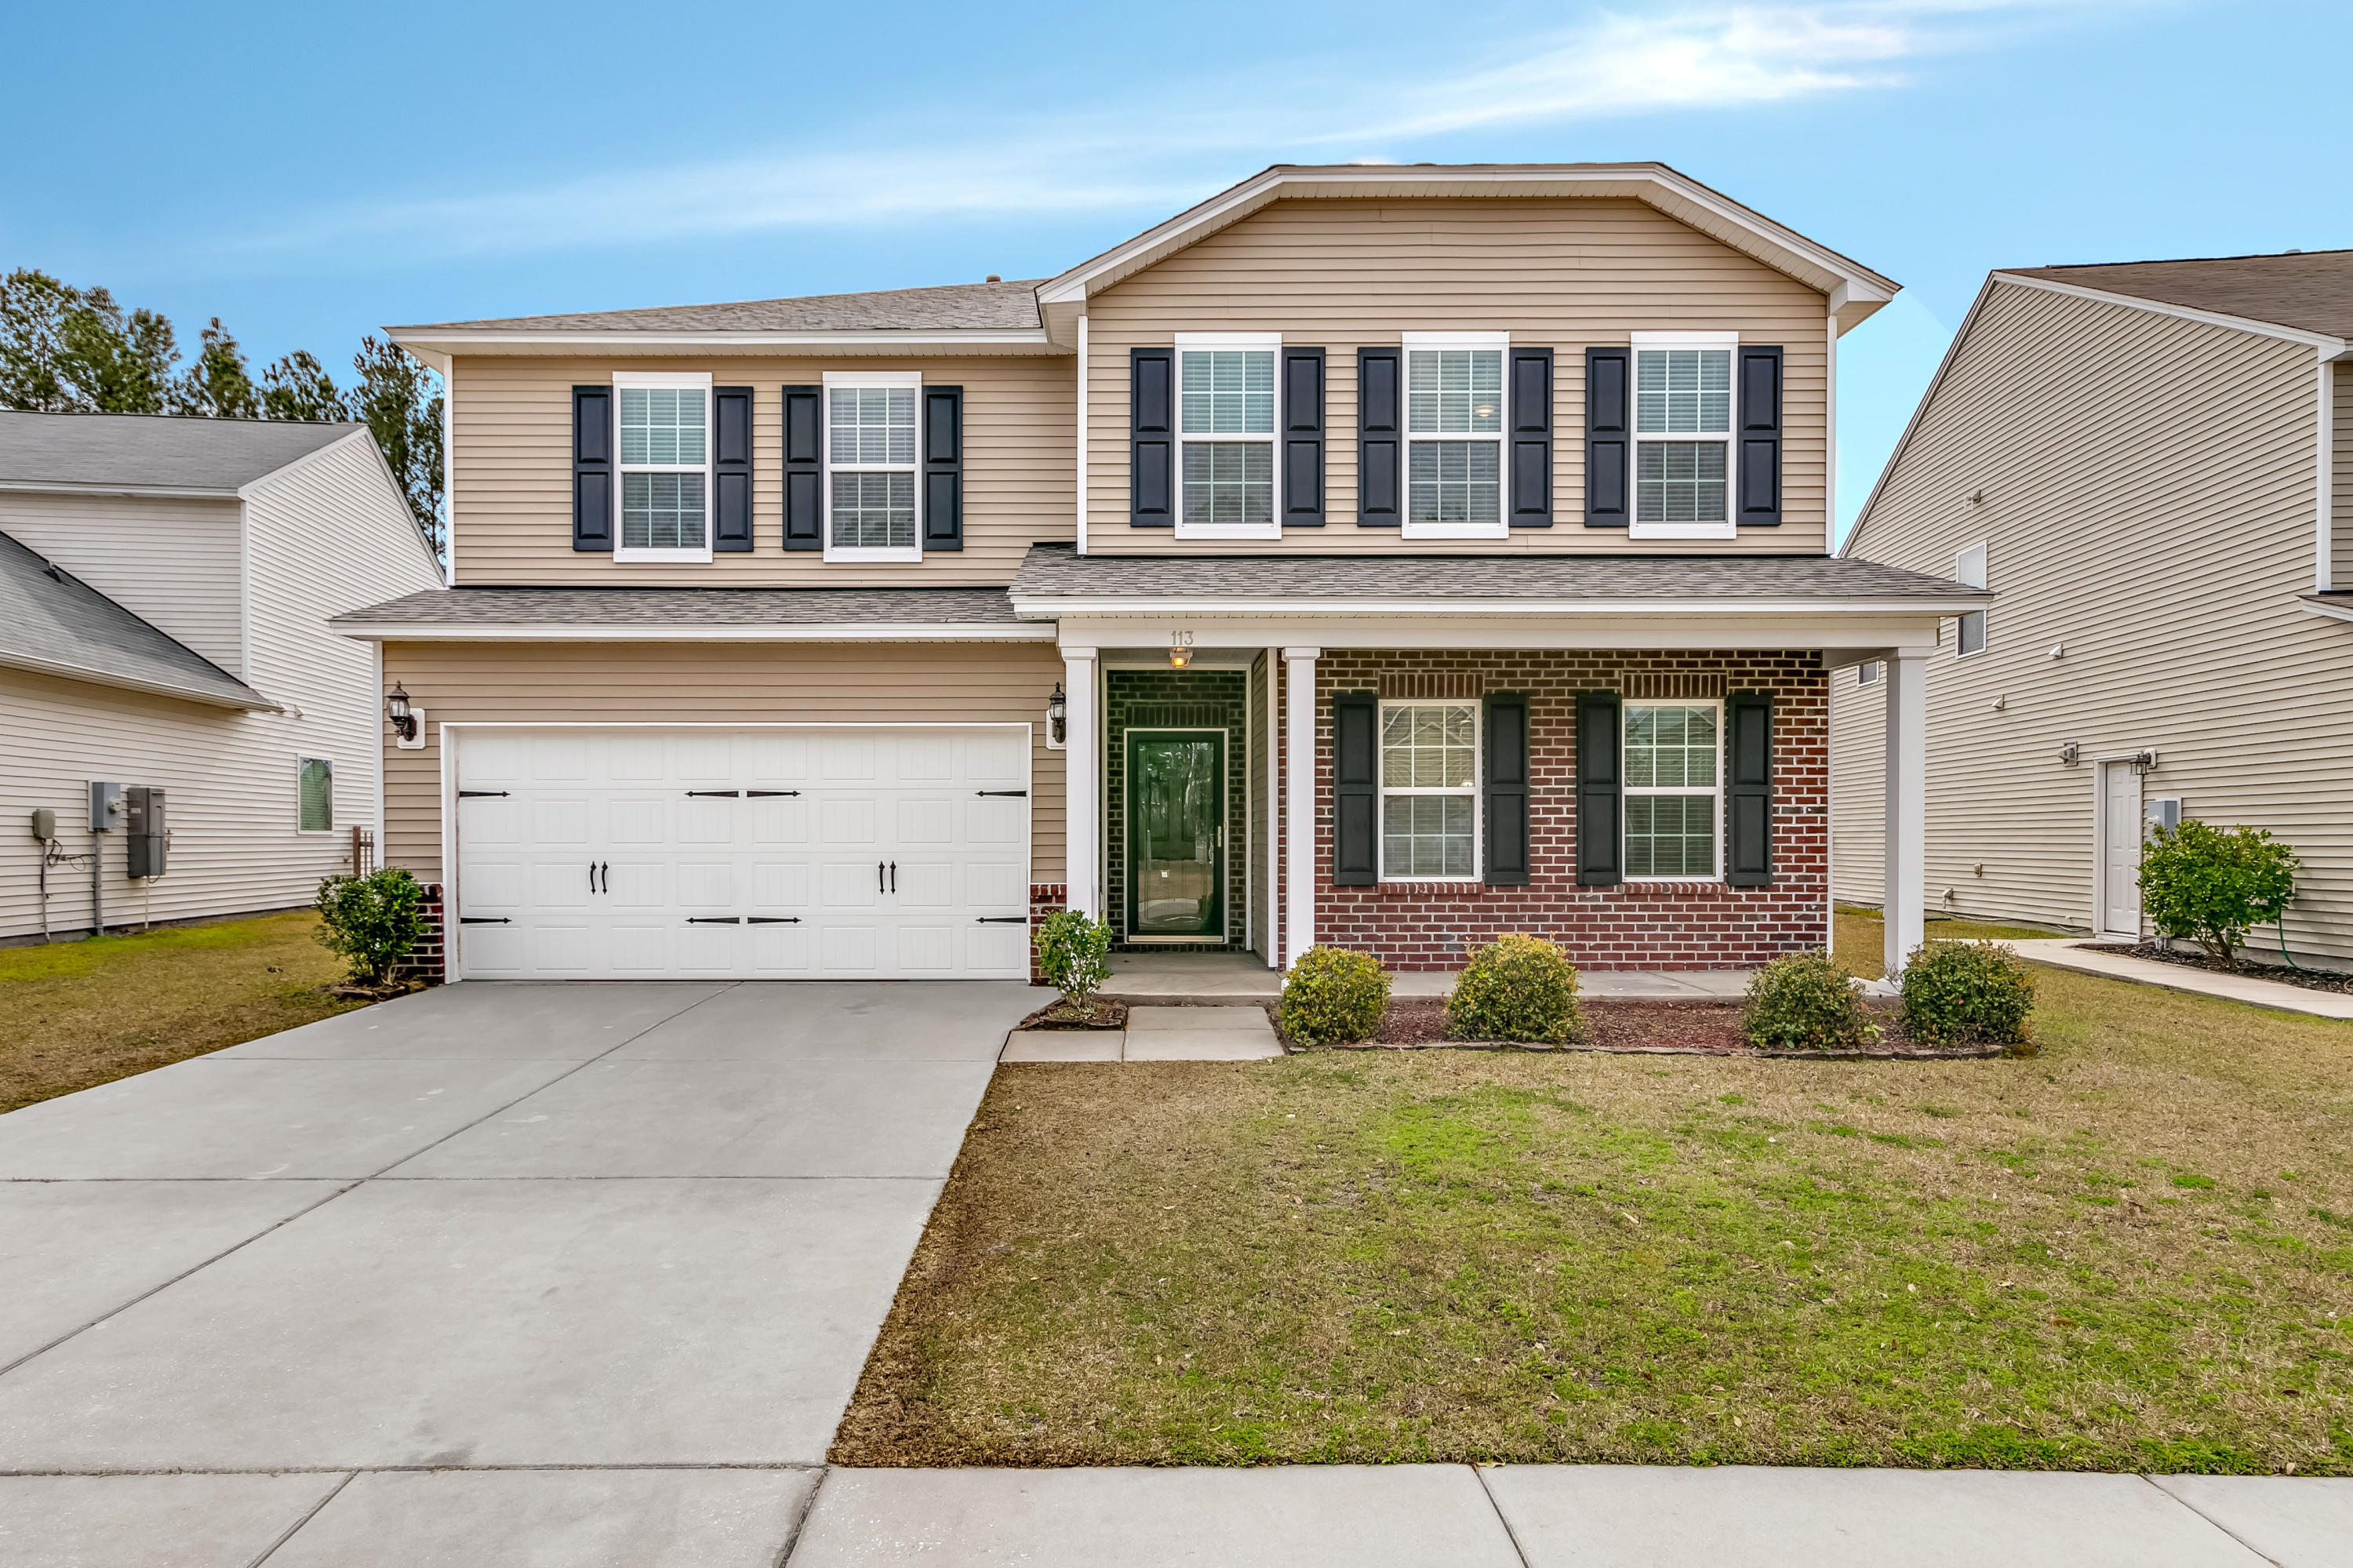 113 Beacon Falls Court Summerville, Sc 29486